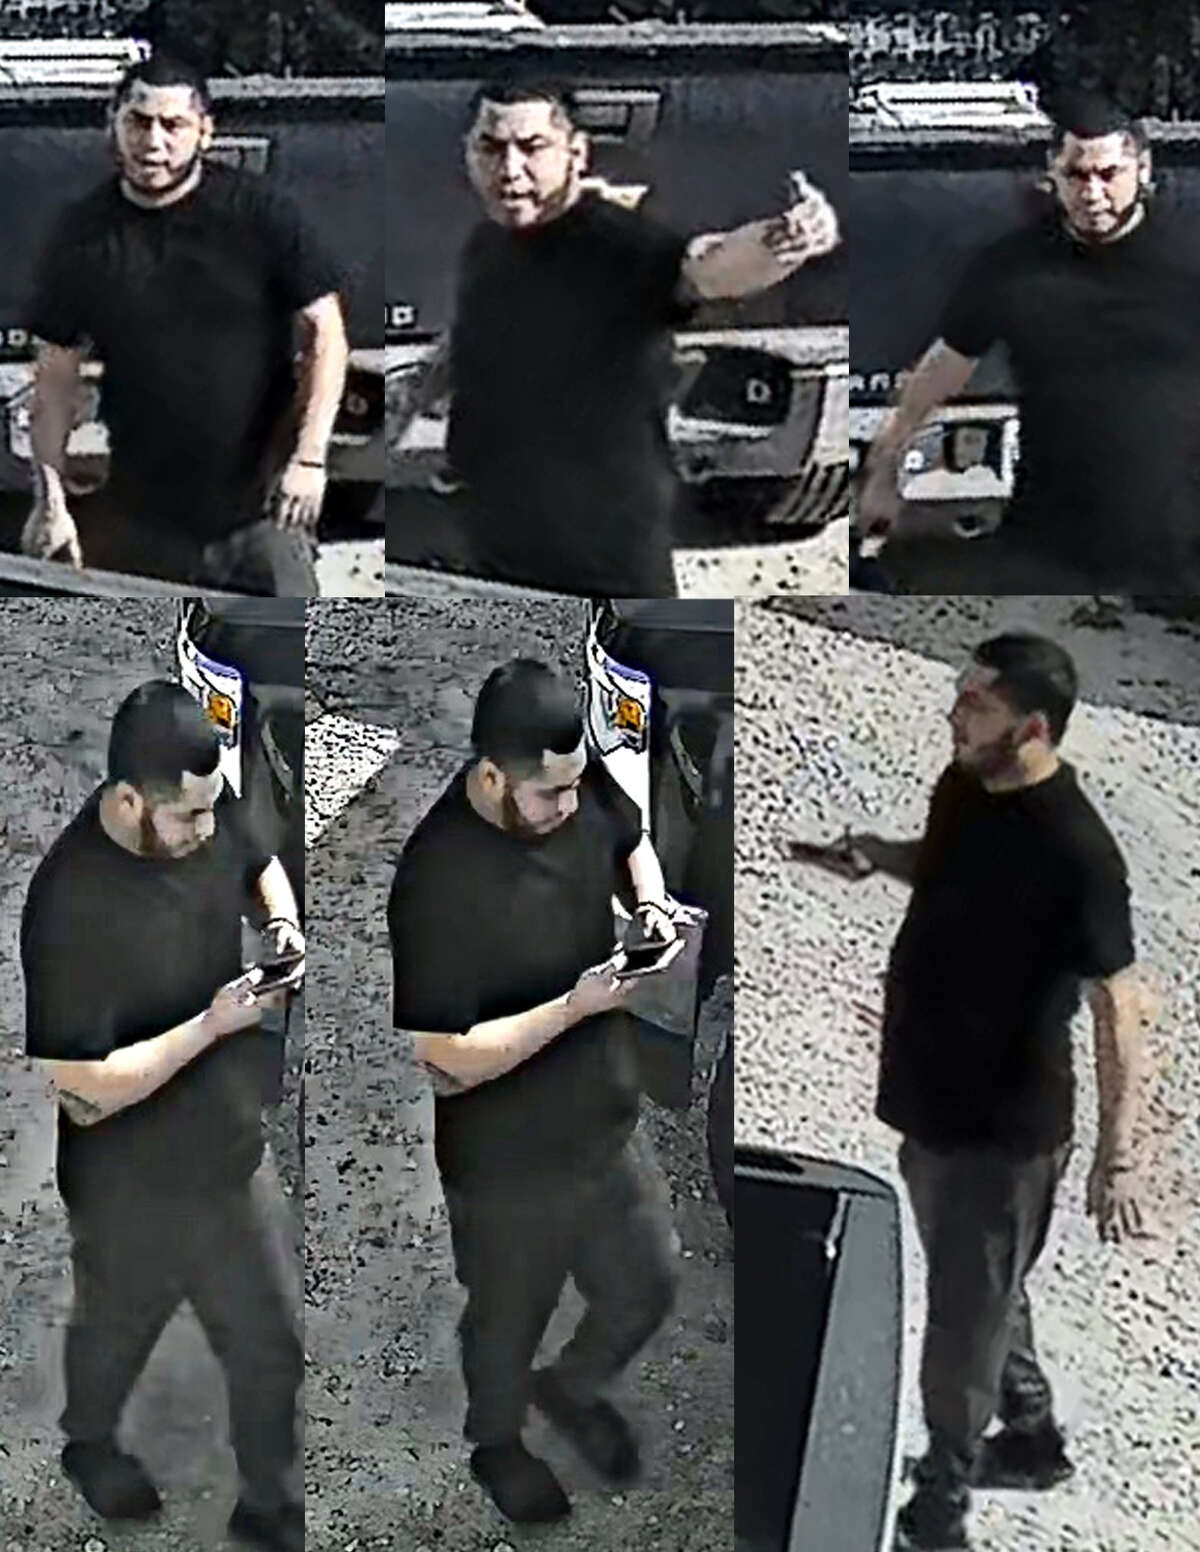 Houston Police are looking for this man, a person of interest, in the shooting death of Sergeant Sean Rios, 47, a 25-year veteran of the department. Rios was killed November 9, 2020. Handout photo from the Houston Police Department